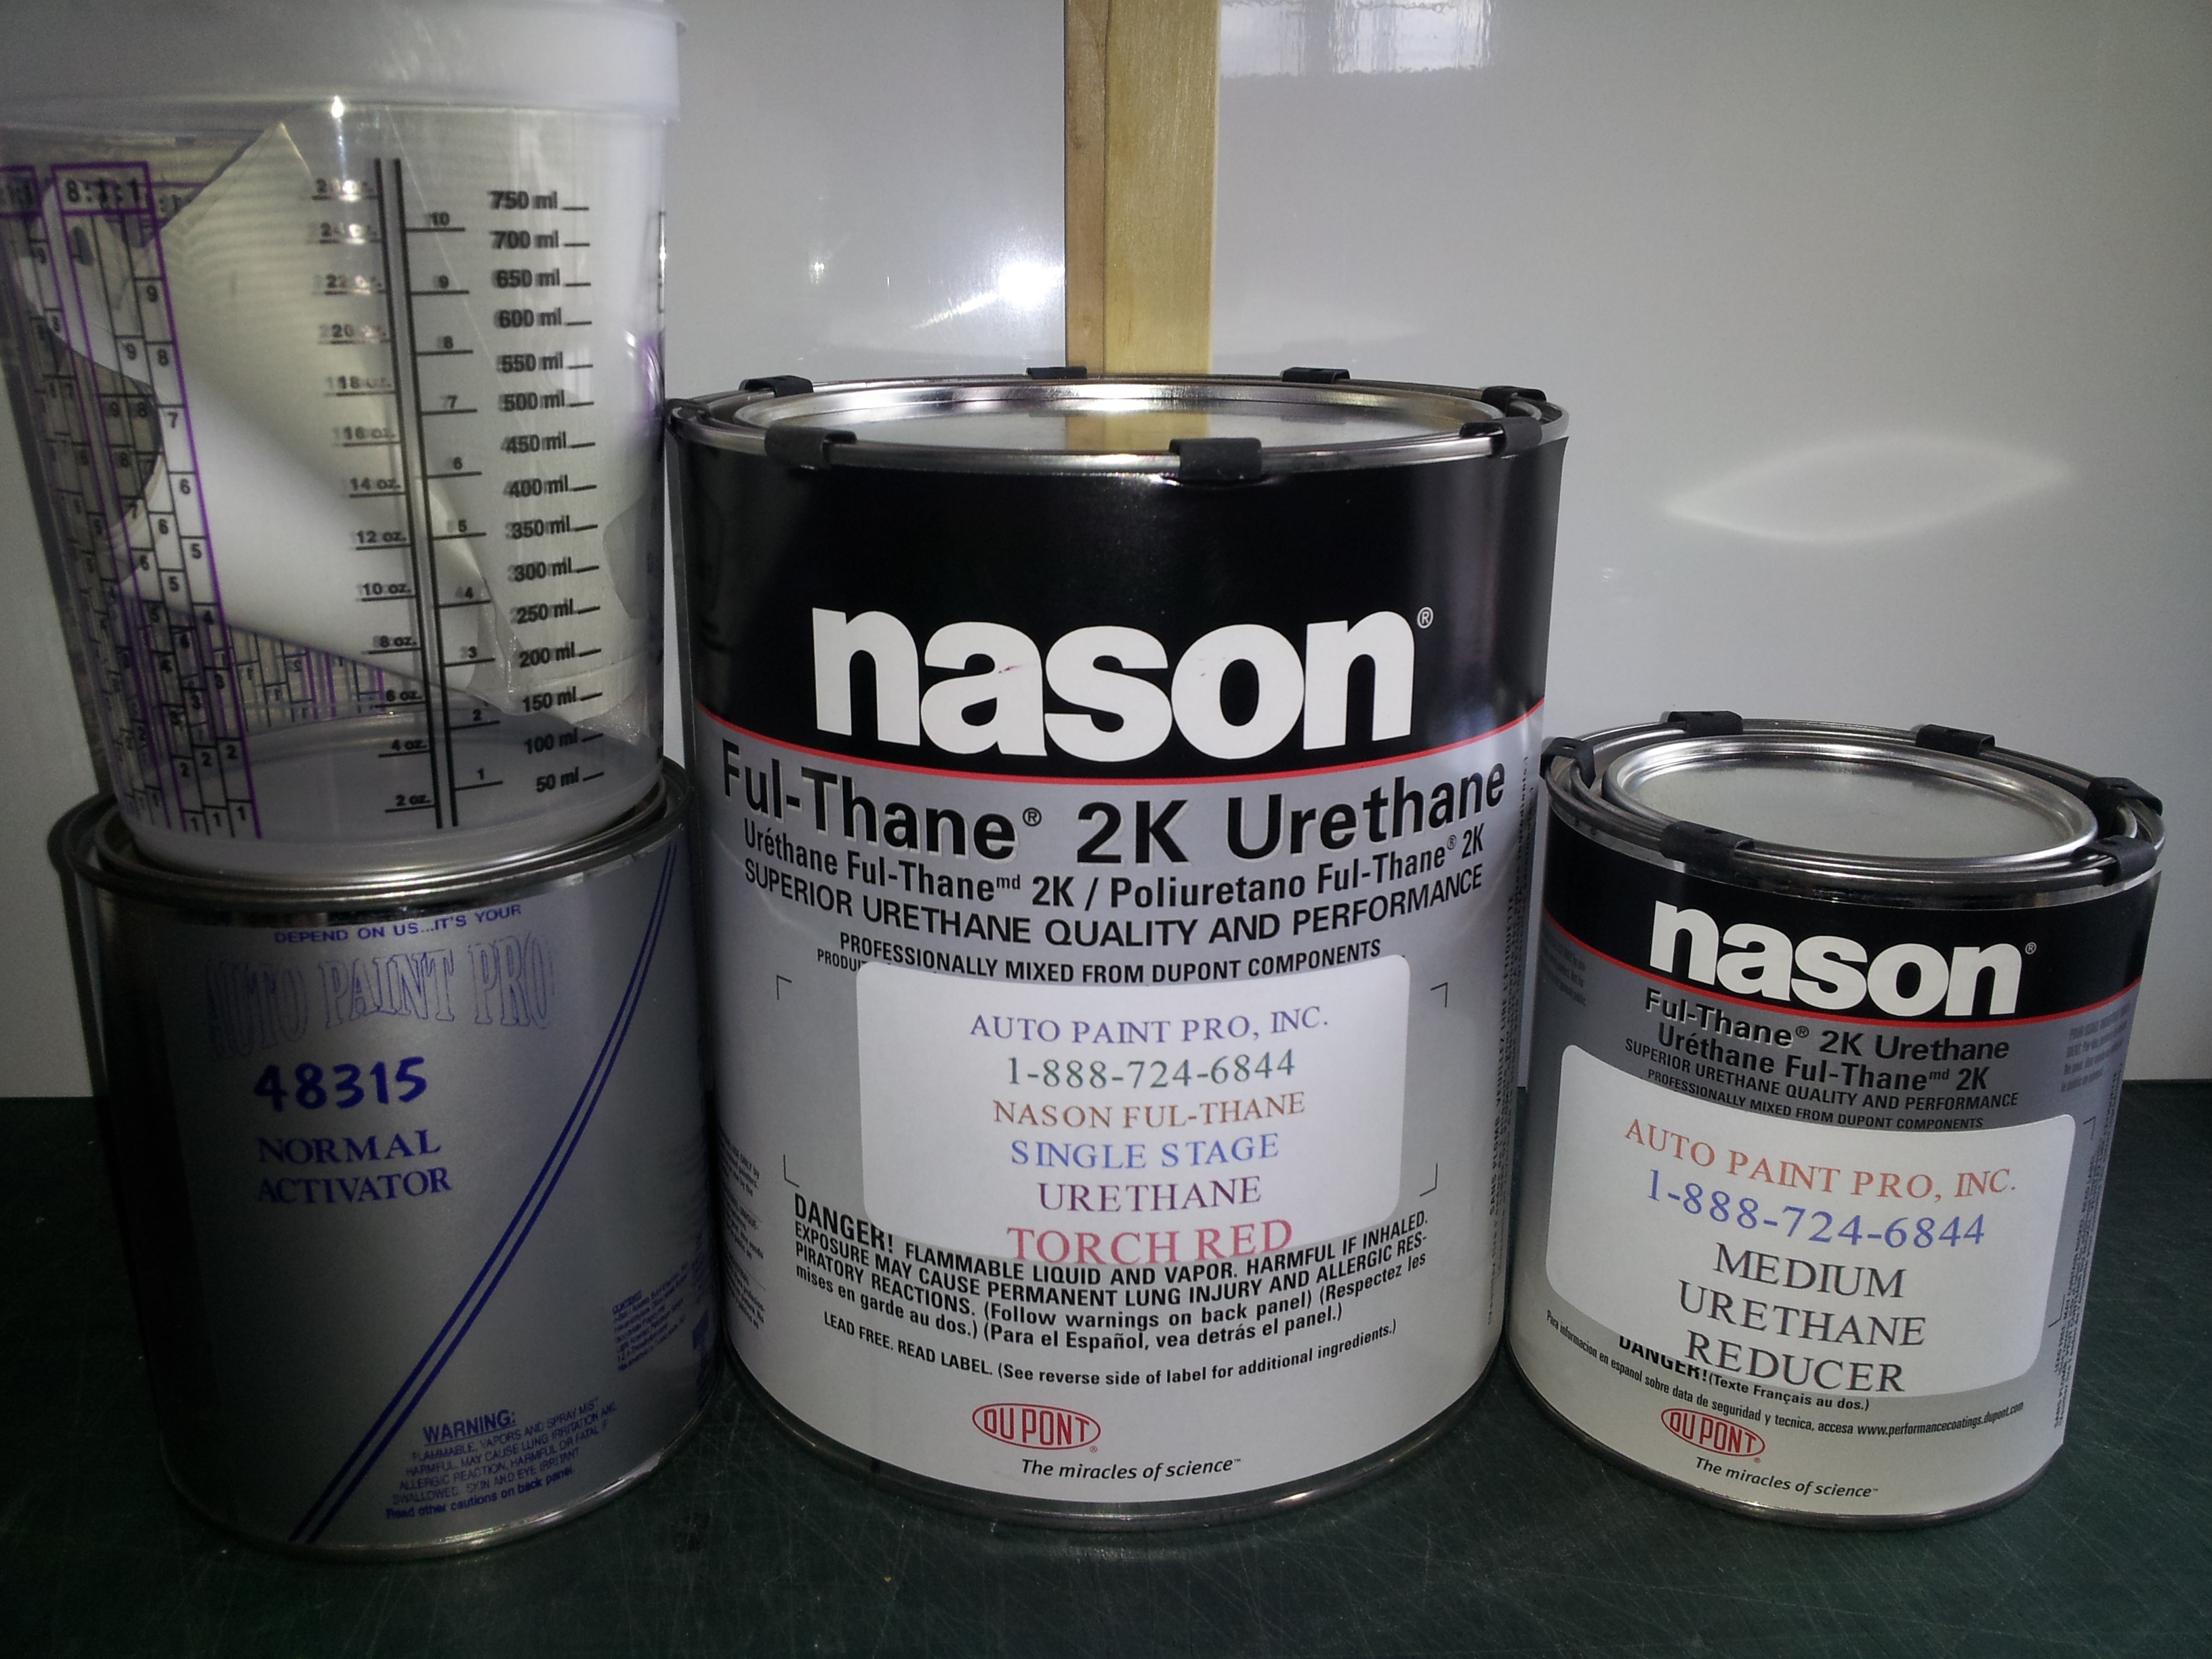 Dupont / Nason Urethane Full Thane 2K Urethane Single Stage